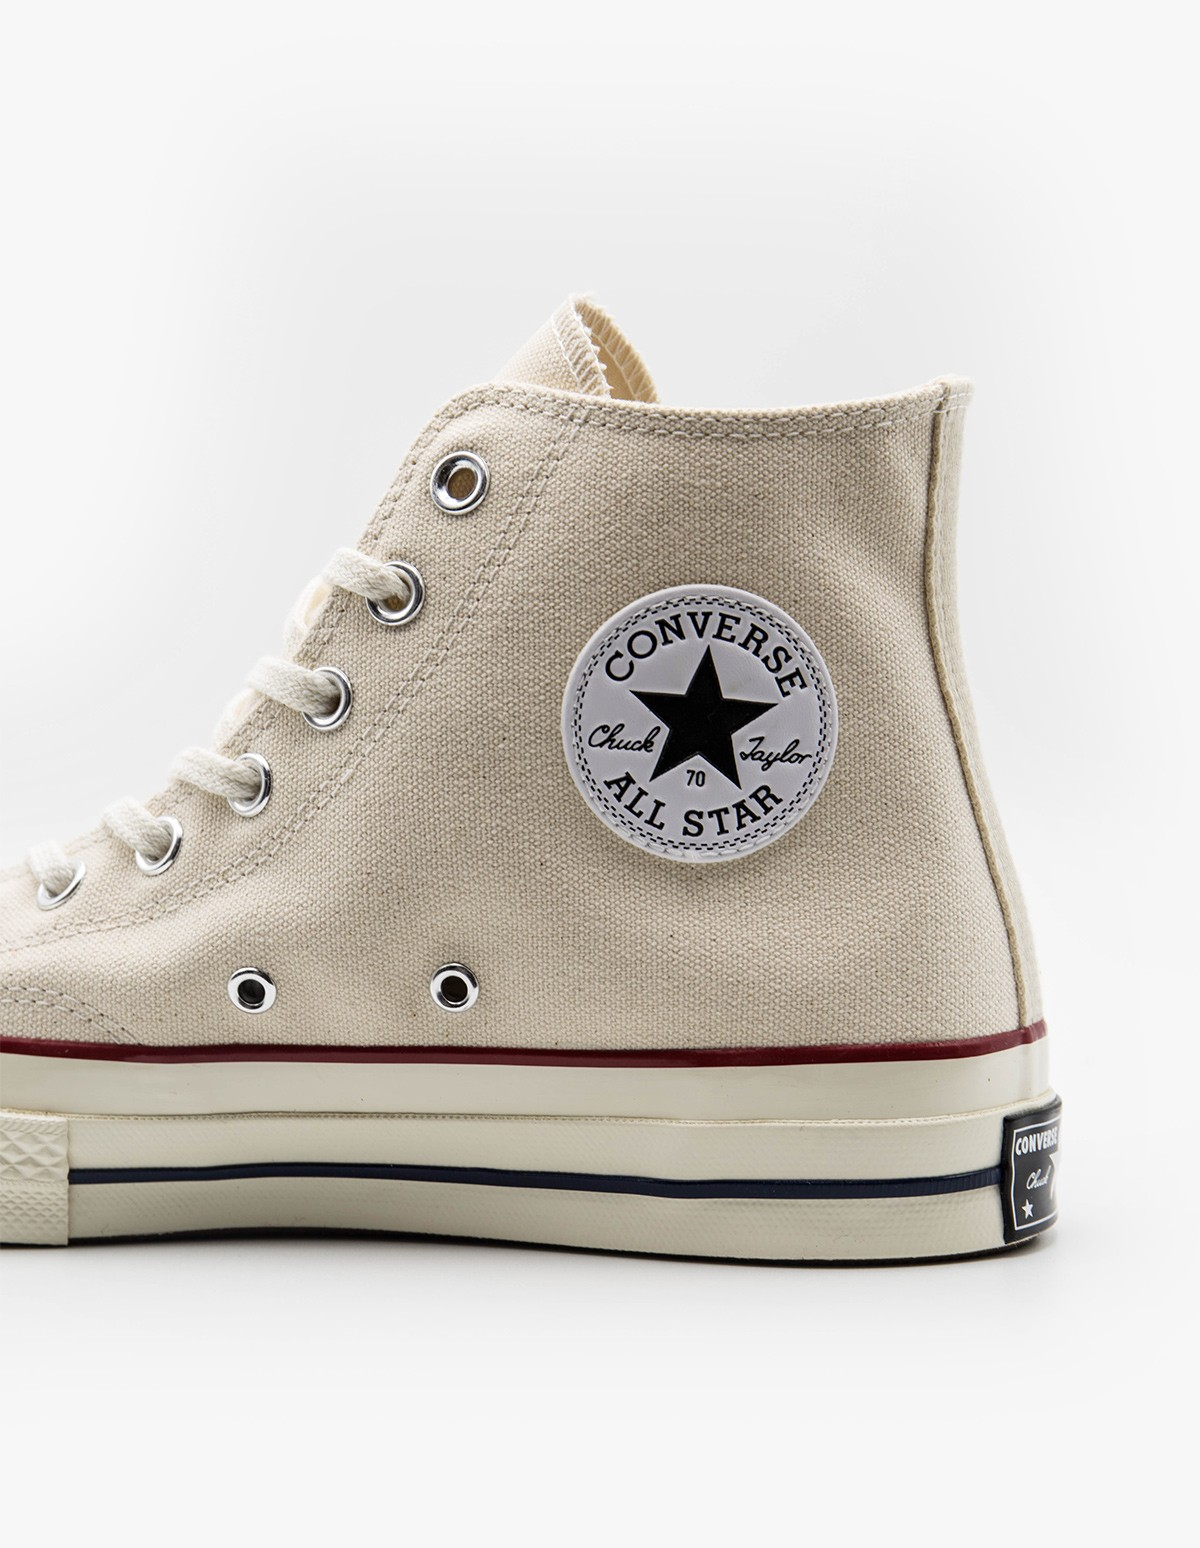 Converse Chuck Taylor High All Star '70 in Parchment Sand